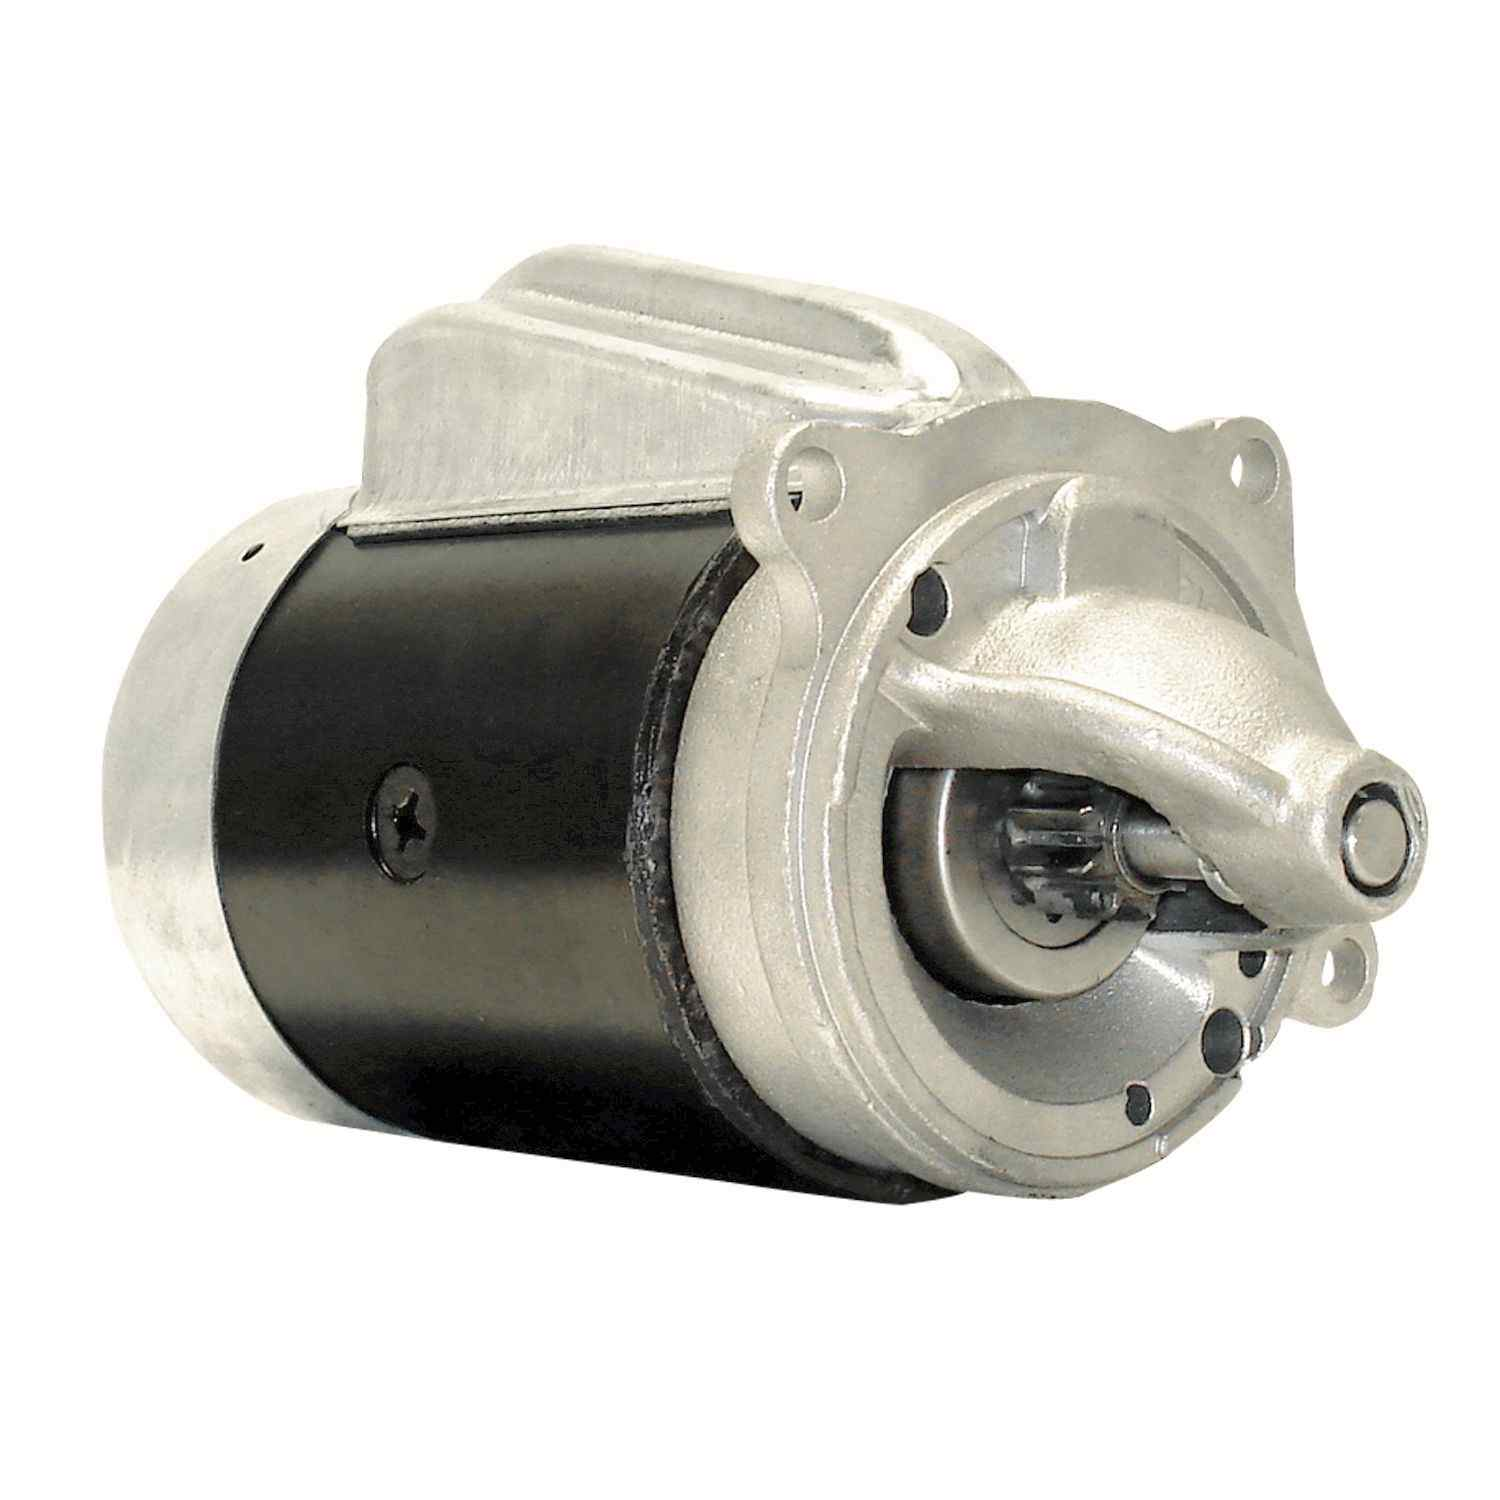 ACDELCO GOLD/PROFESSIONAL - Reman Starter Motor - DCC 336-1007